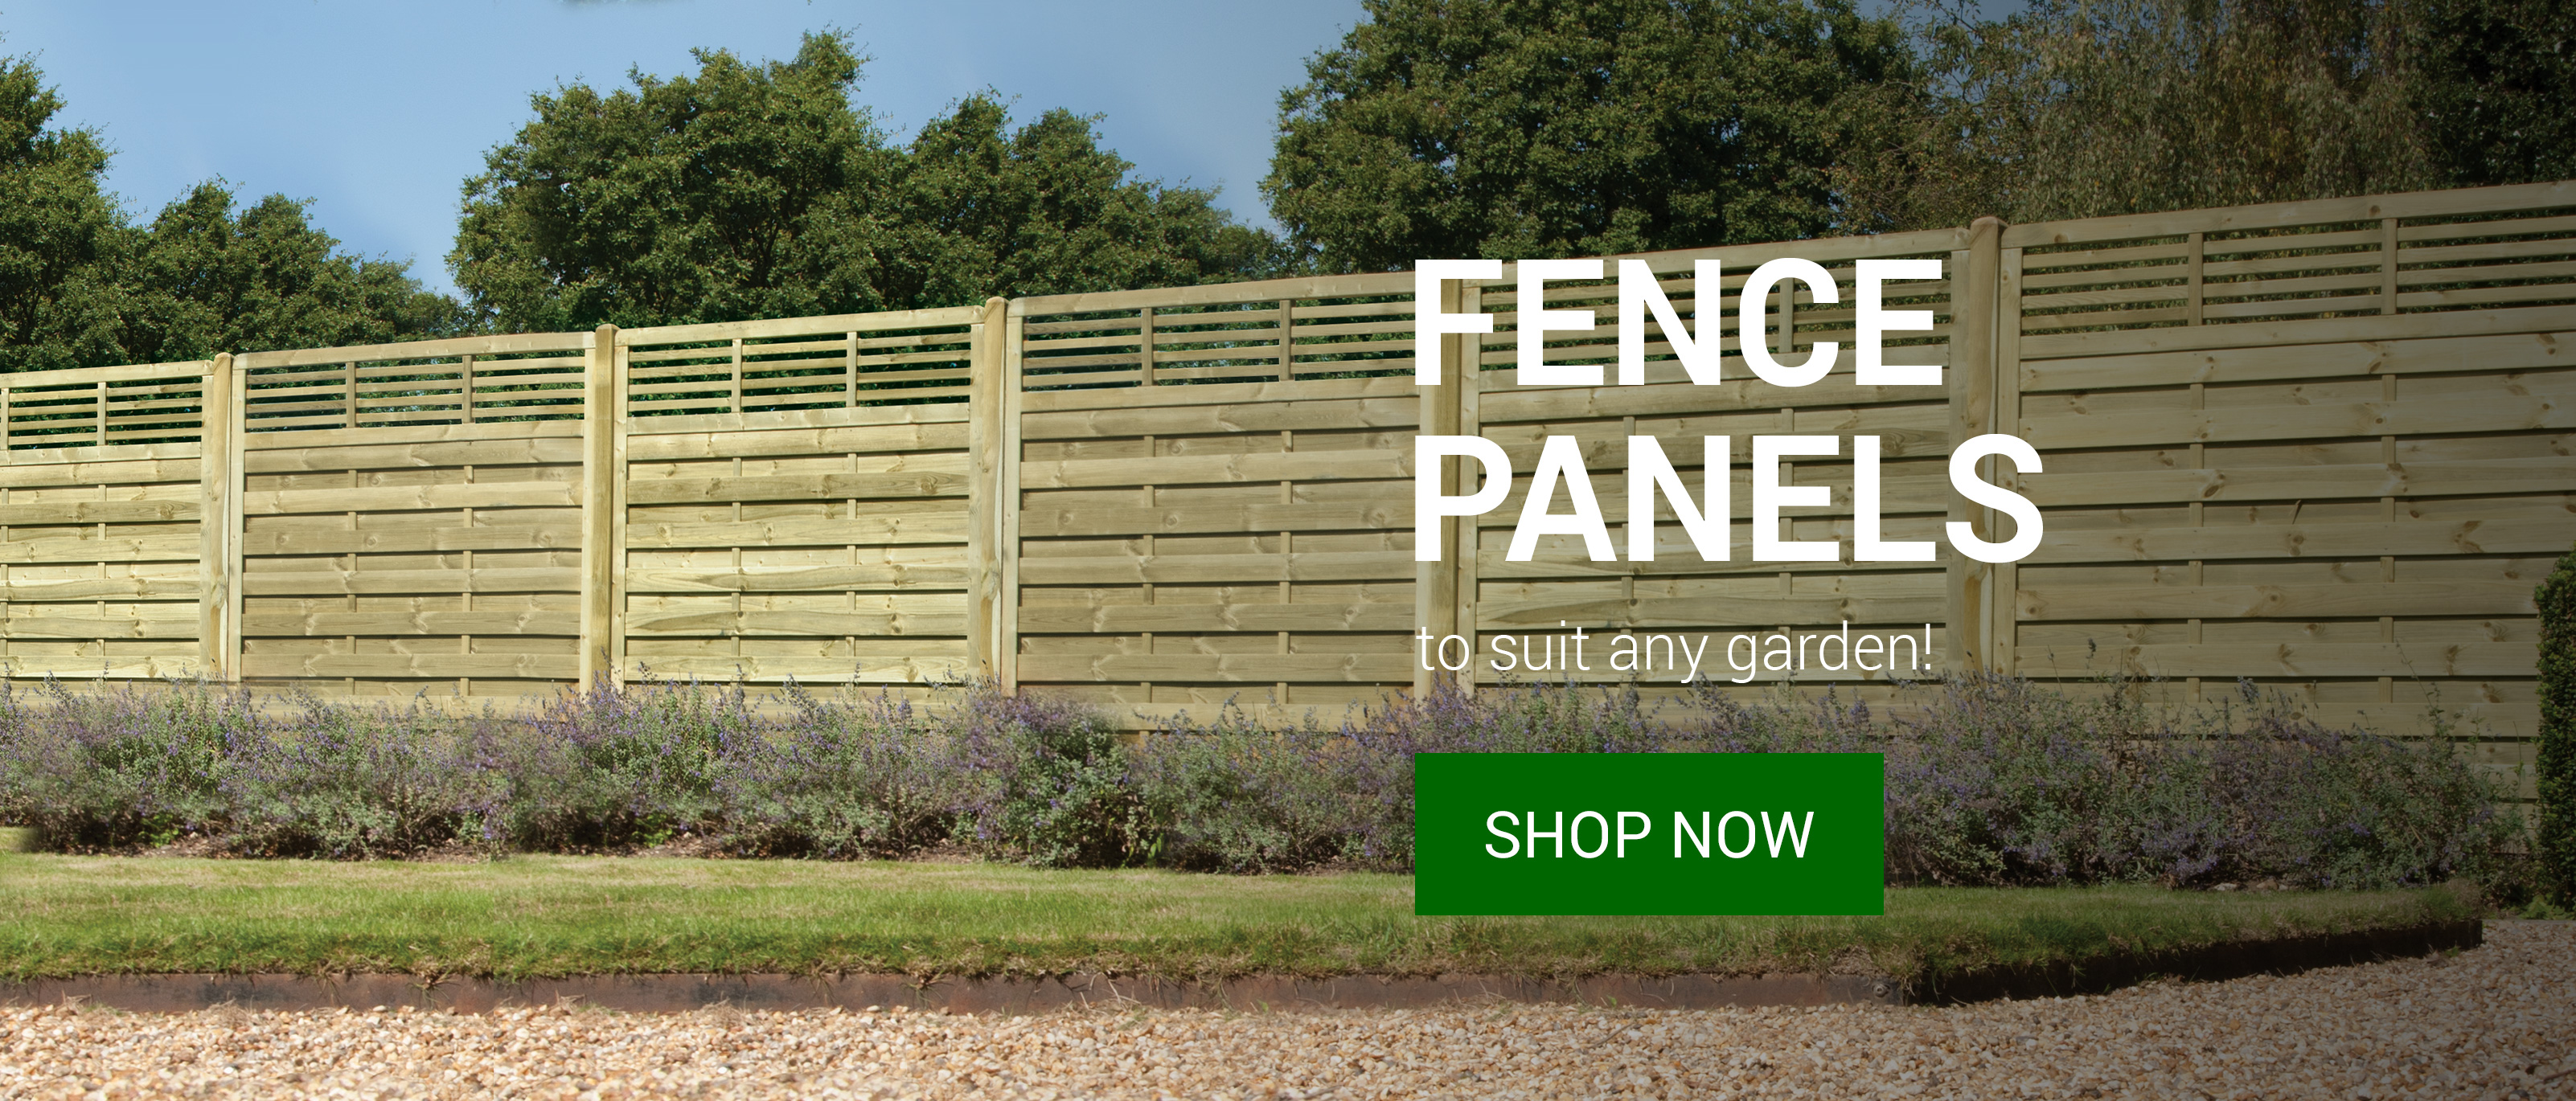 Fence panels to suit any garden!